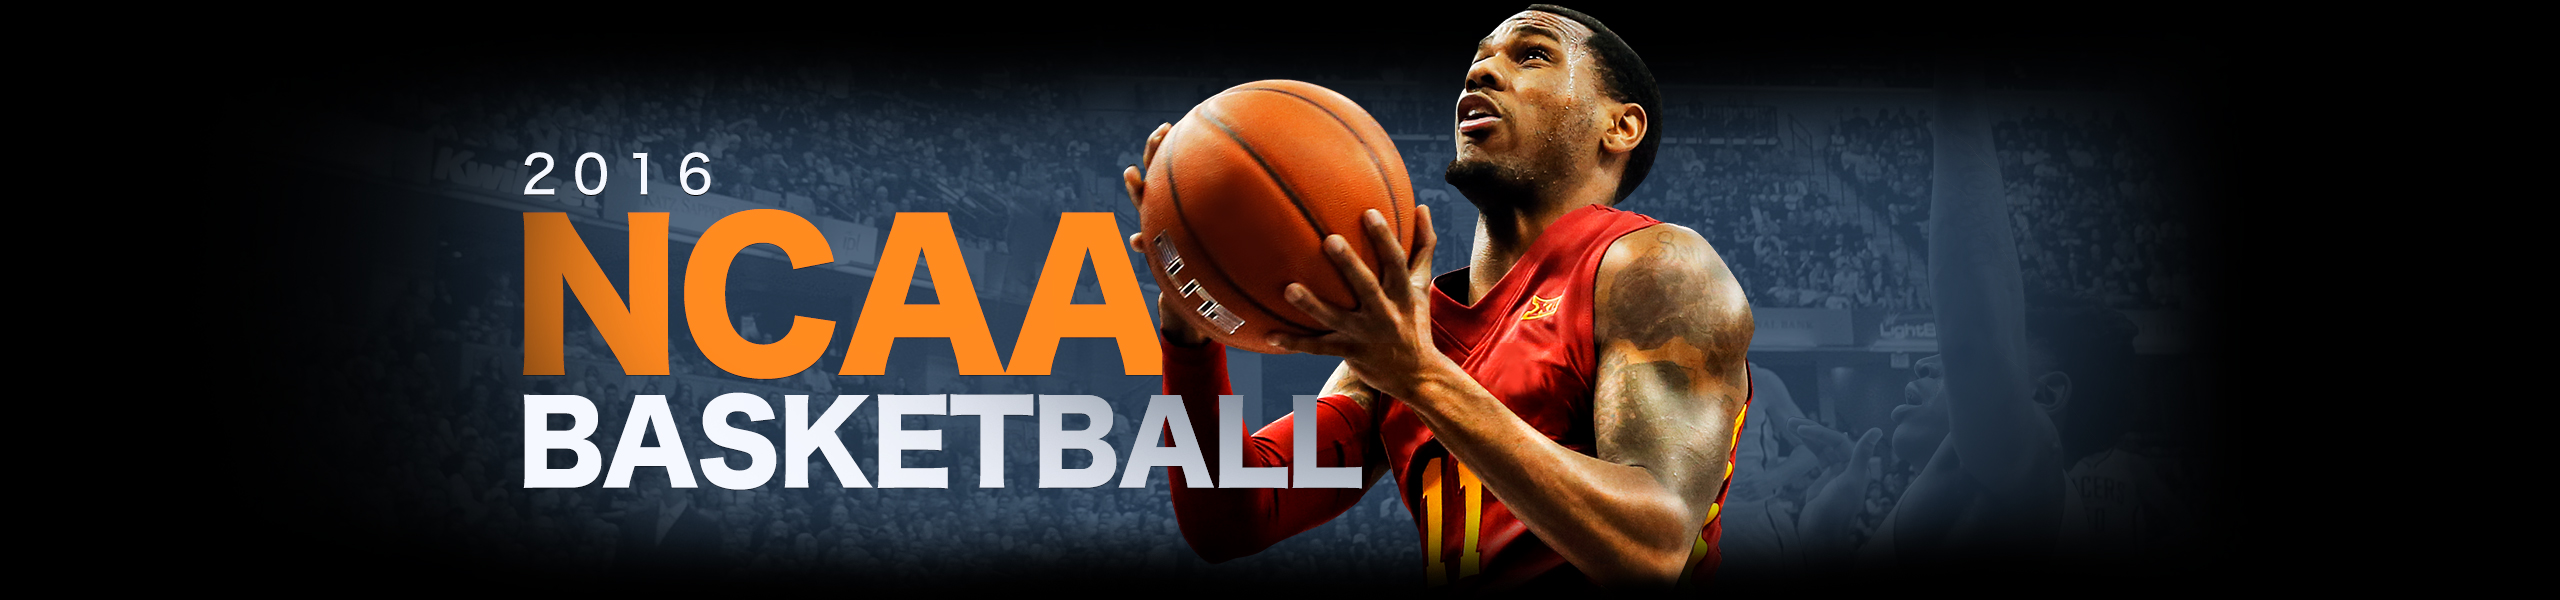 ncaa basketball ap sports online betting sites